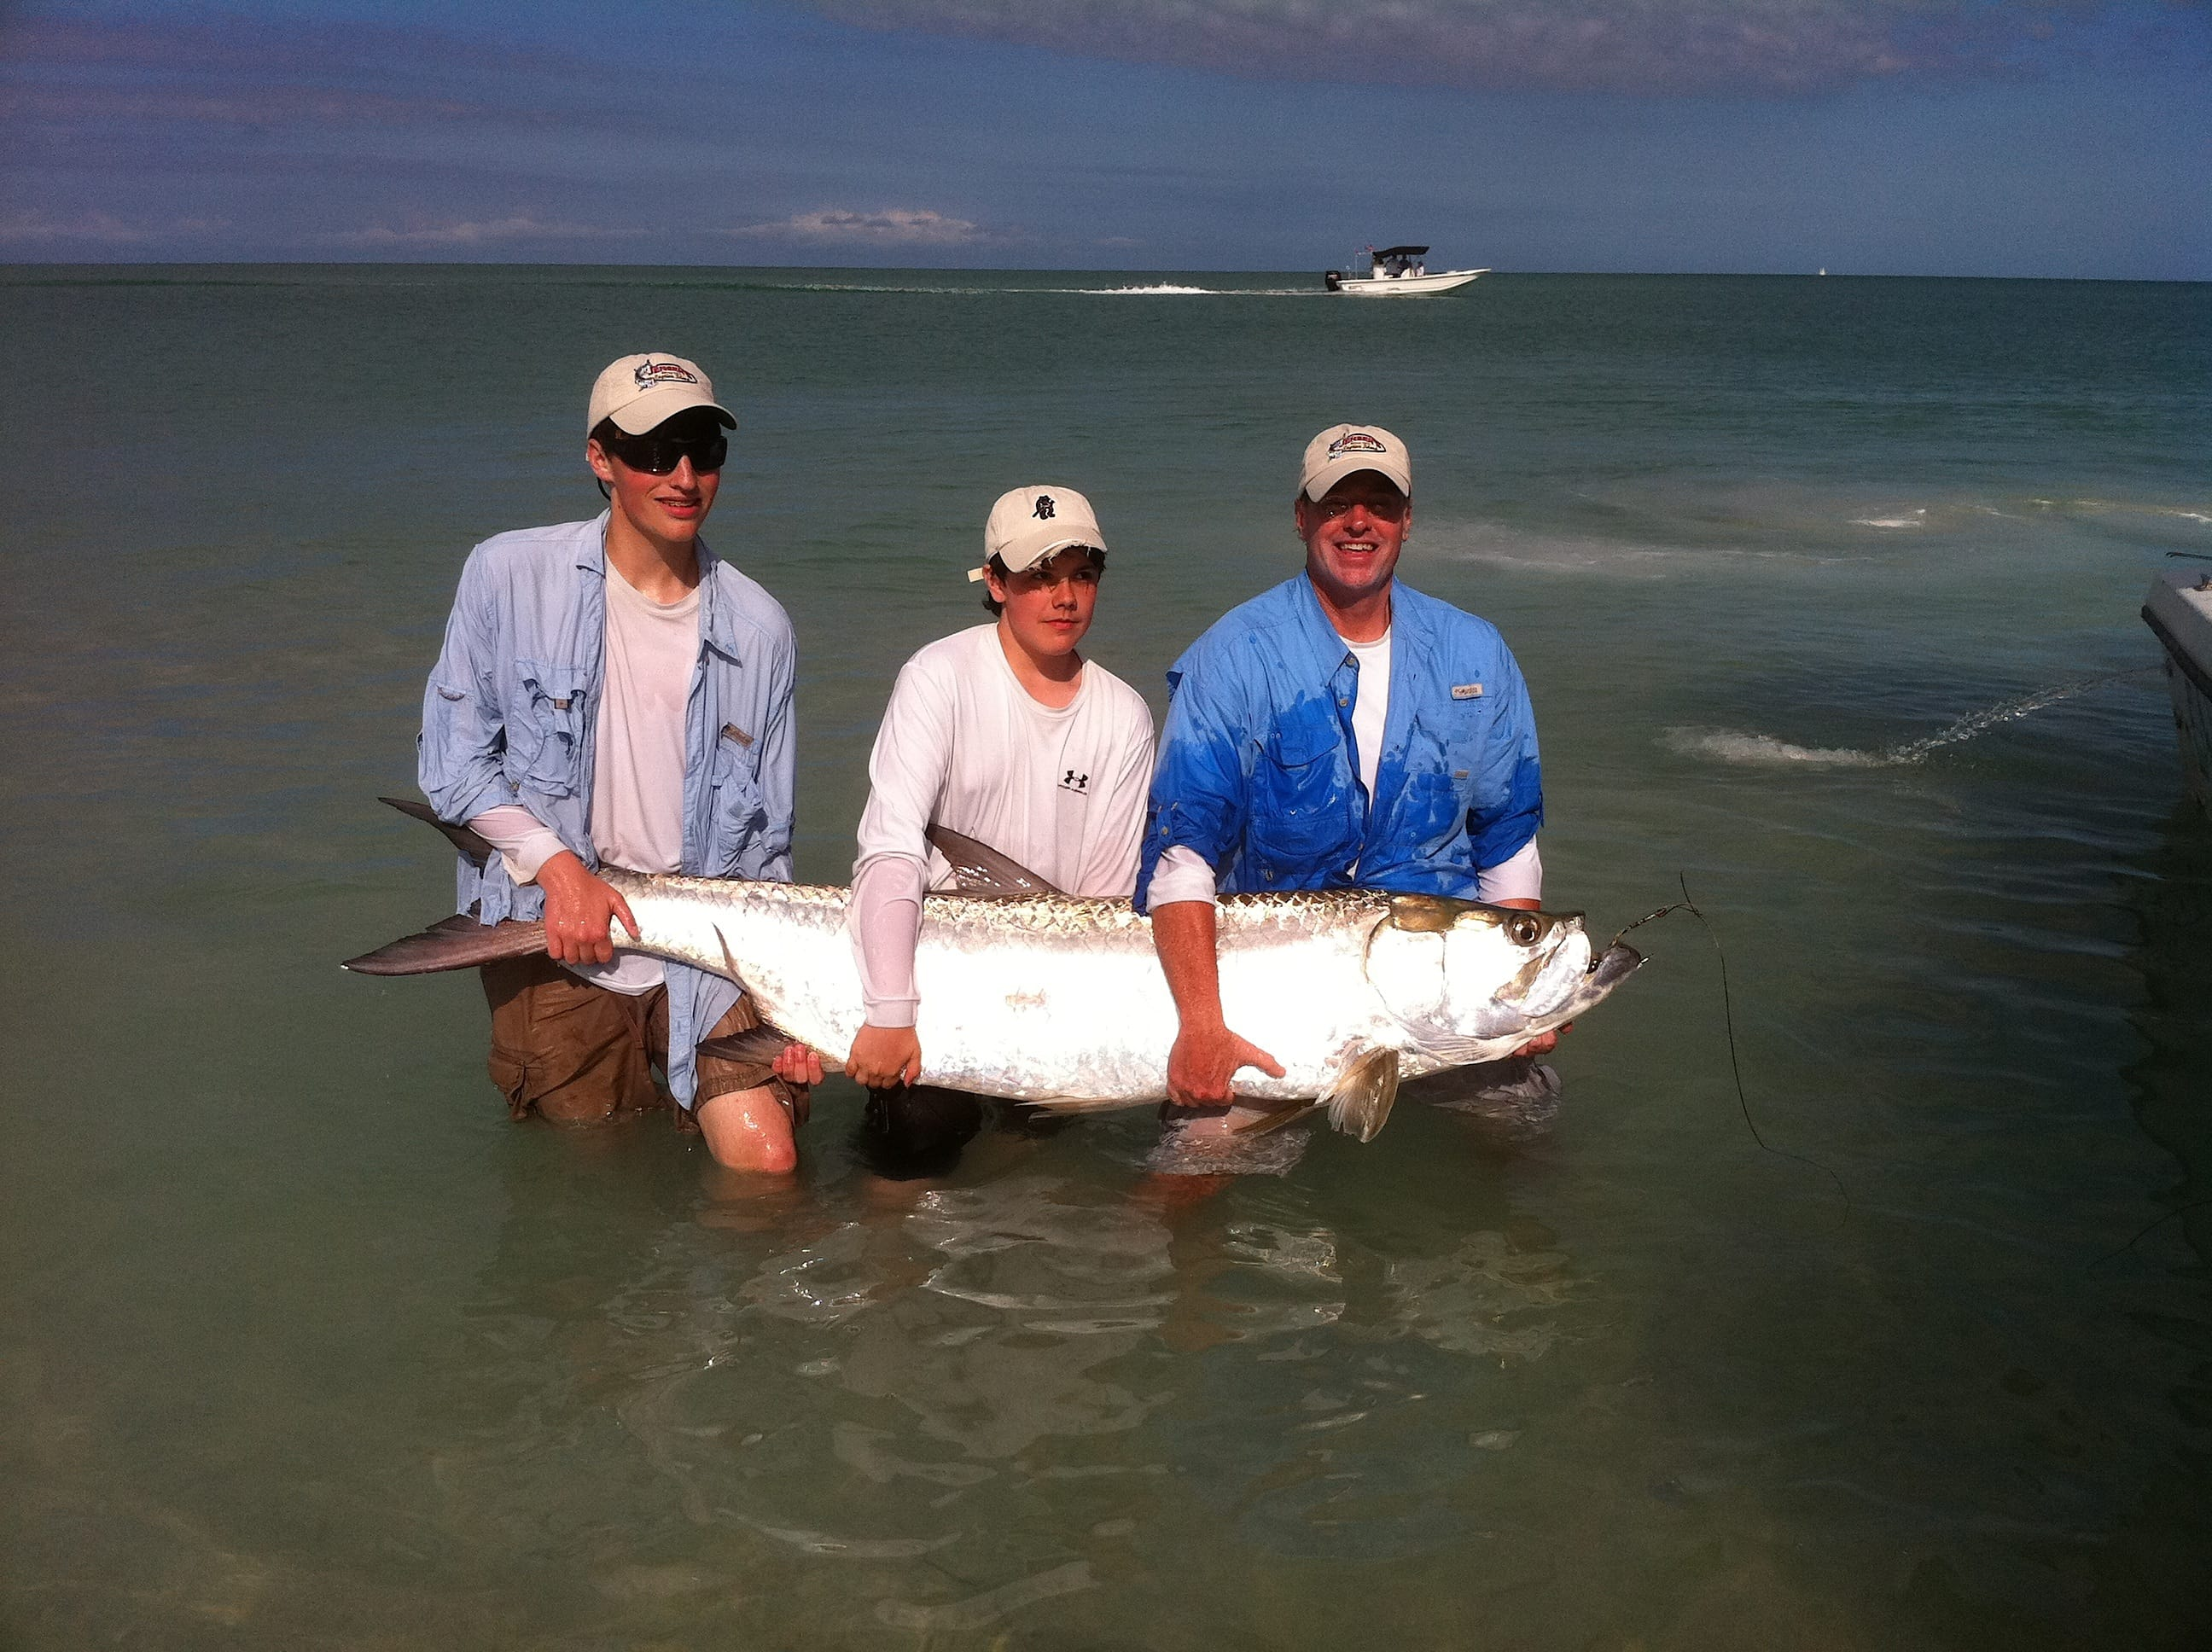 Fort myers fishing report 2 11 13 looking forward to for Half day fishing trips fort myers